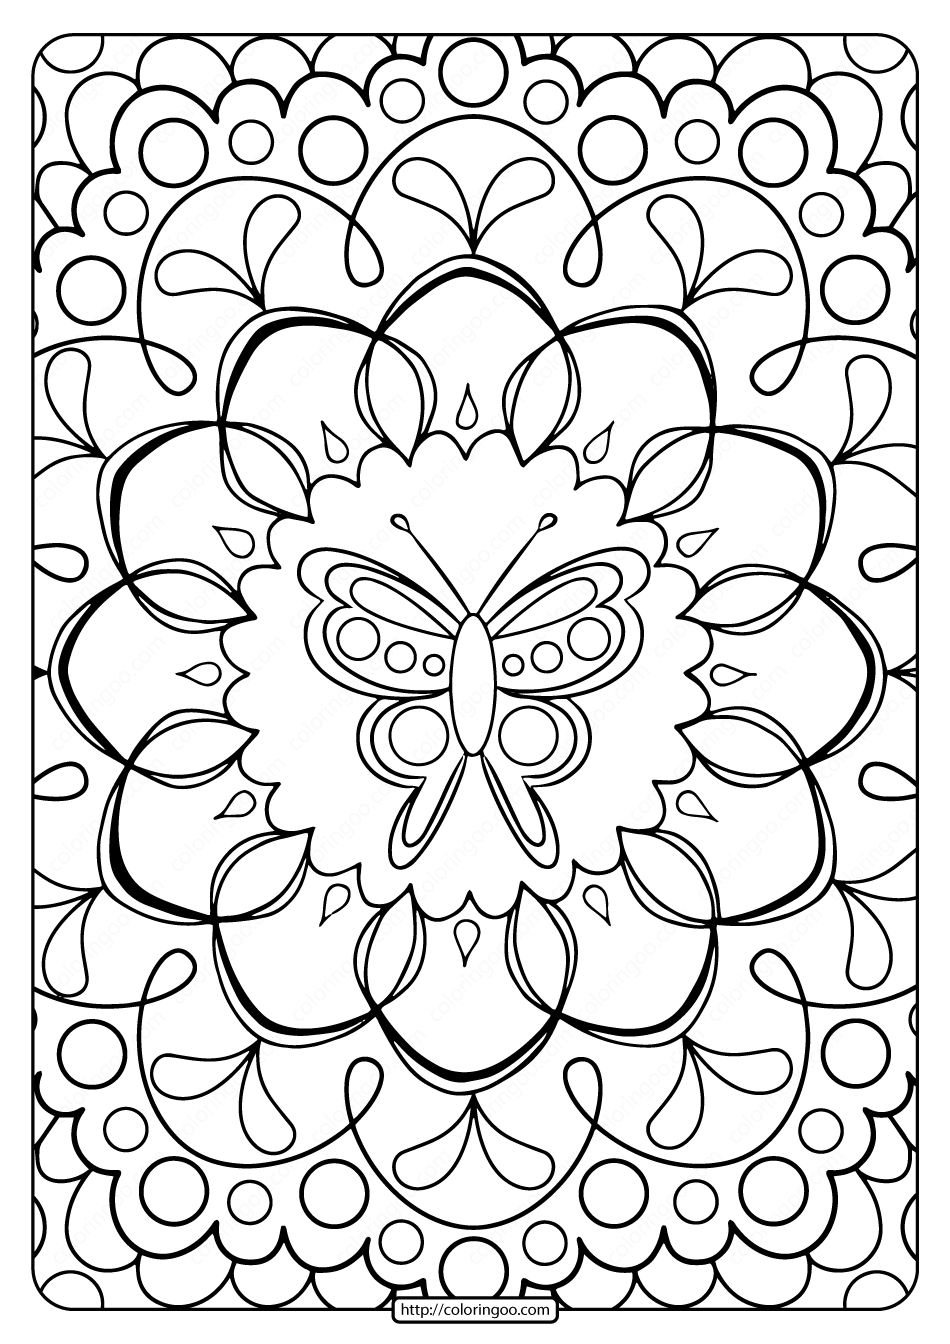 coloring pages to color online free printable butterfly adult coloring pages to color coloring pages online